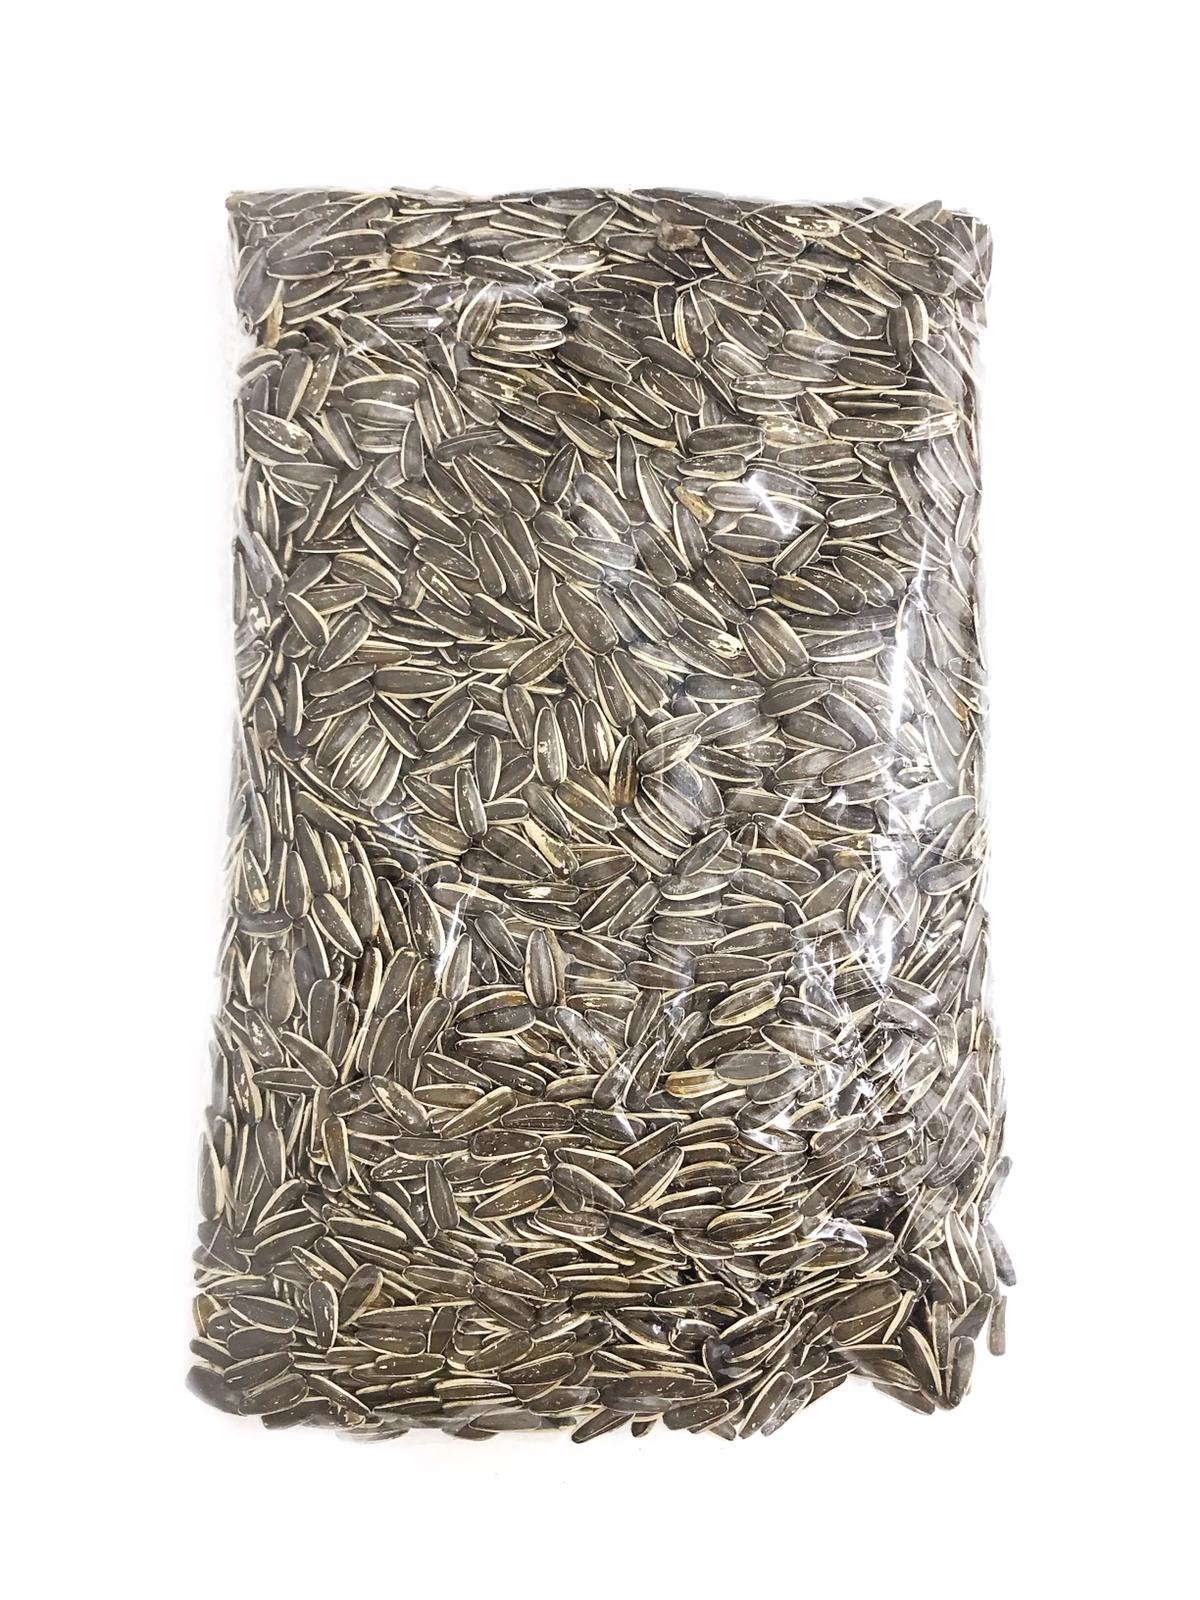 Sunflower Seeds (Small Seeds)